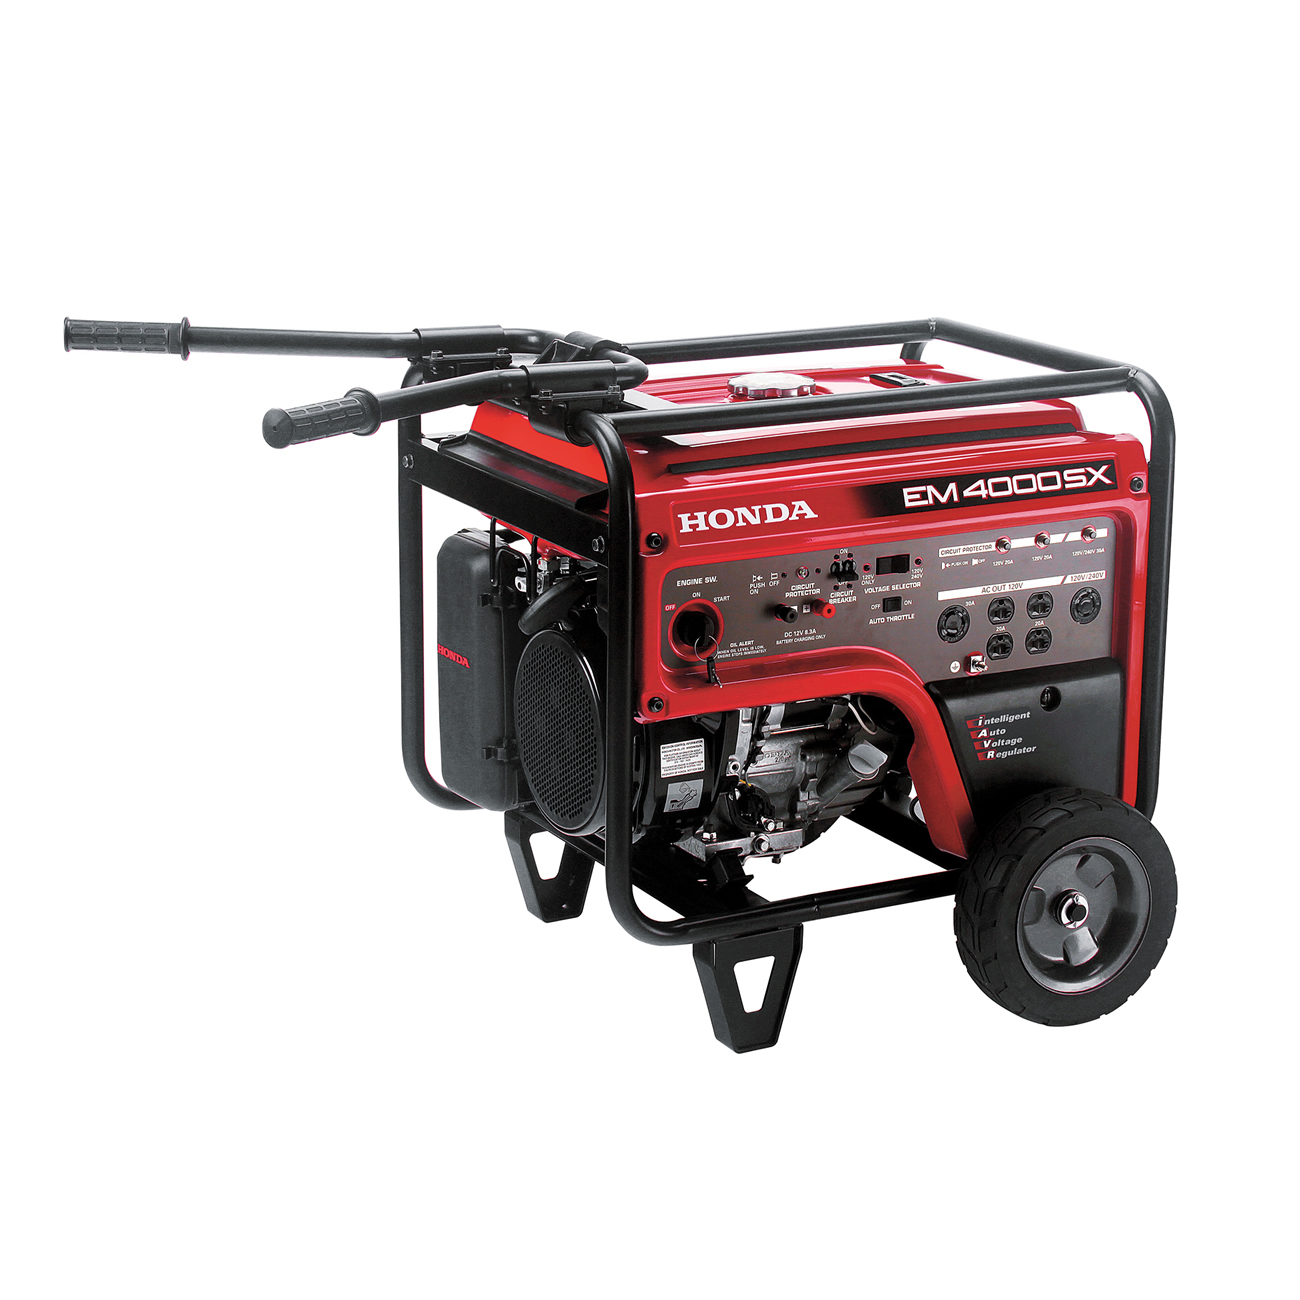 Honda EM4000SXAT 4000W Gas Generator 3500W Rated Electric Start Ignition -